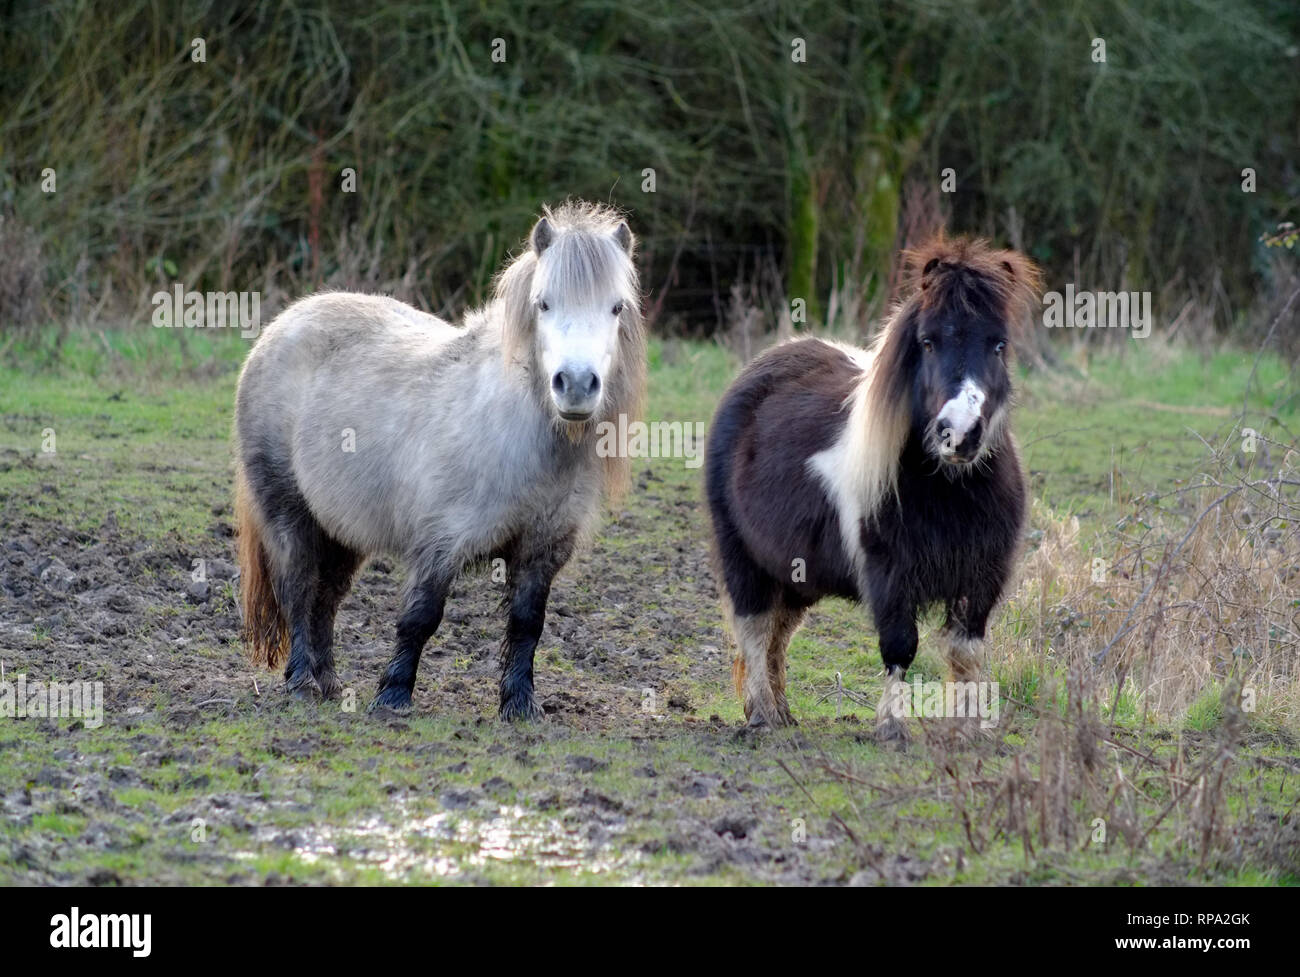 Shetland ponies in a muddy field, East Sussex, UK - Stock Image